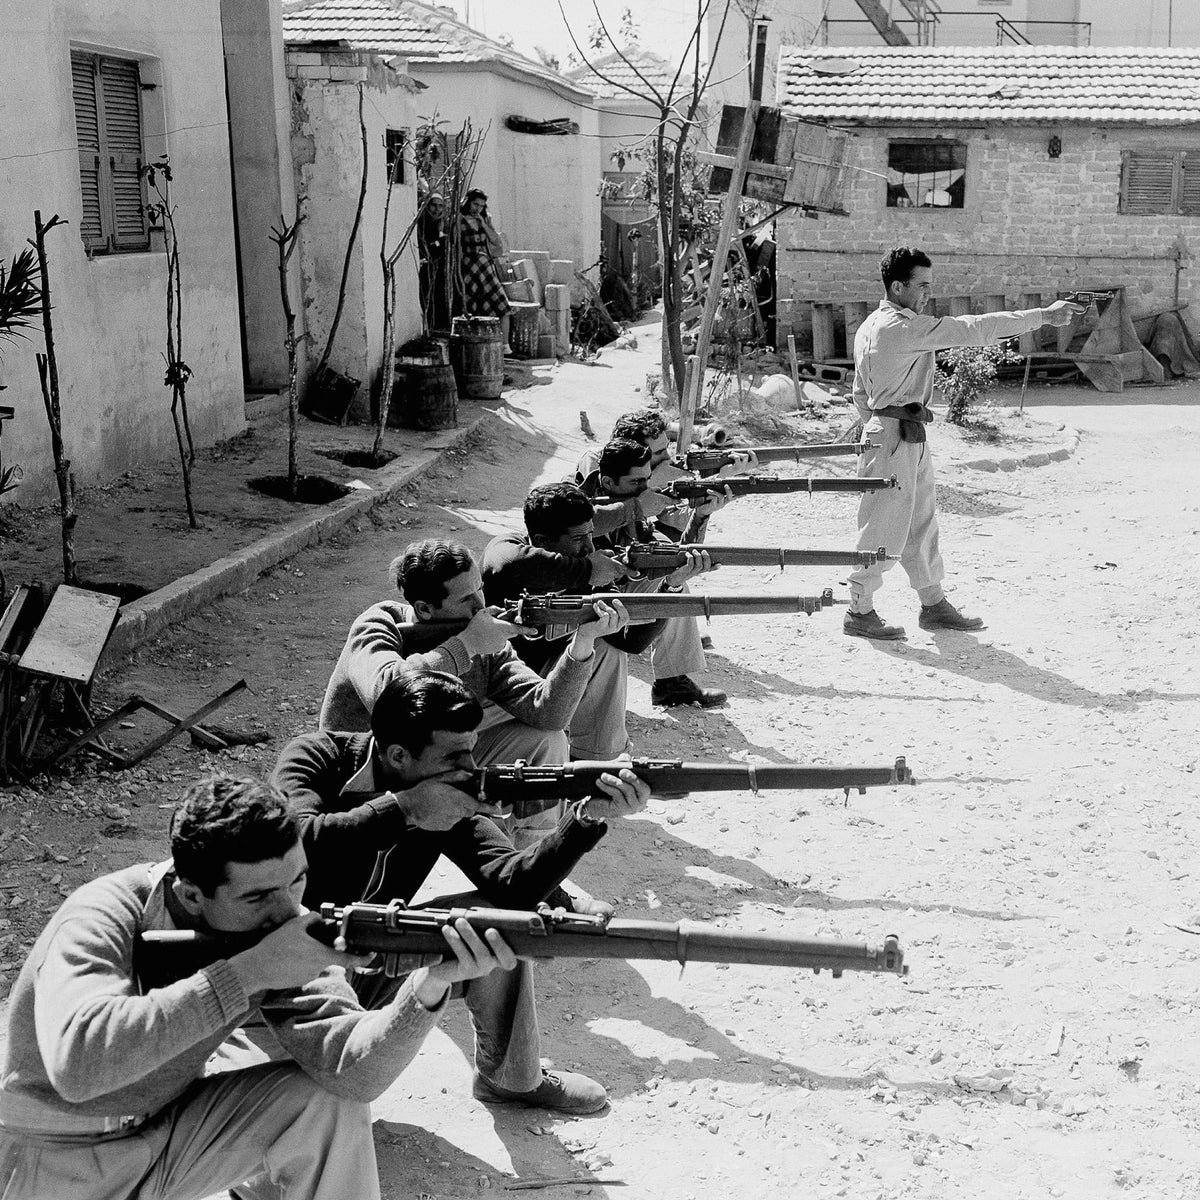 Members of the Irgun receiving training near the Jaffa-Tel Aviv border, two months before the War of Independence started in May 1948.